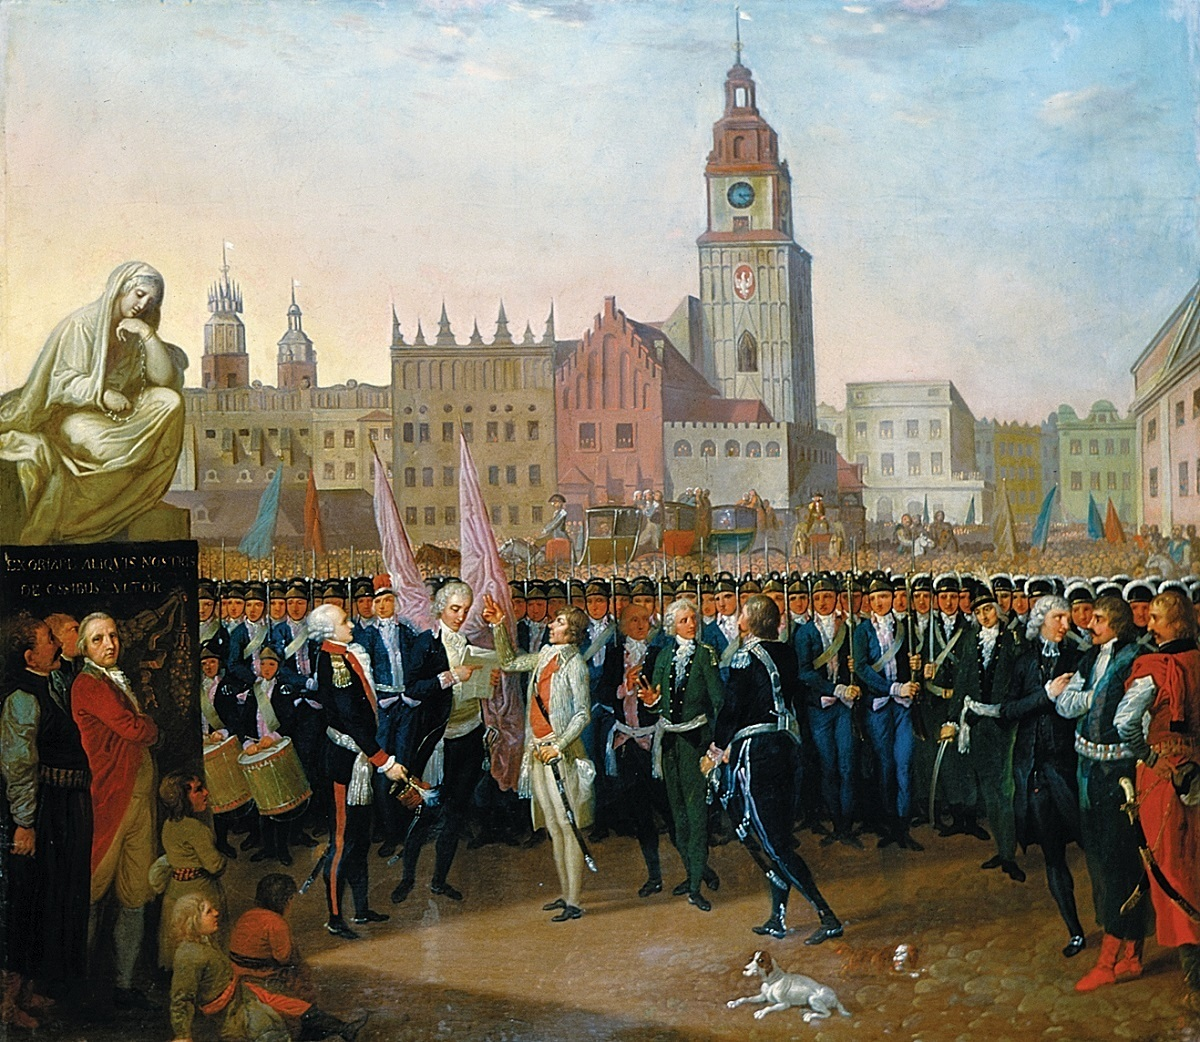 Tadeusz Kościuszko takes the oath to the King on the Rynek in Kraków, on March 24, 1794. The red brick Town Hall with white bastion still standing on a 1797 painting by Franciszek Smuglewicz.